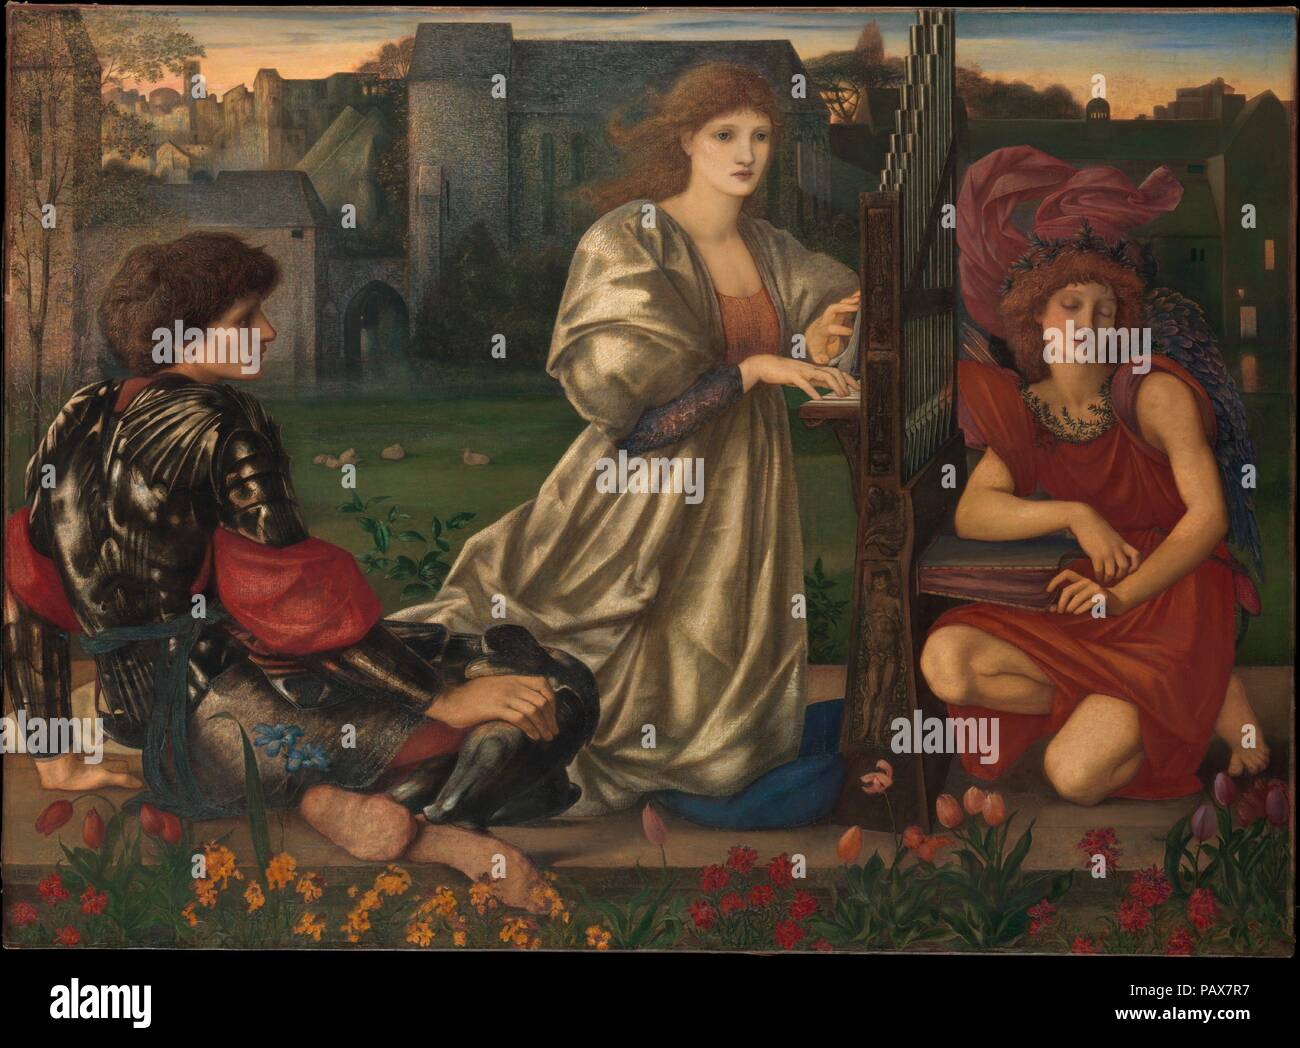 "The Love Song. Artist: Sir Edward Burne-Jones (British, Birmingham 1833-1898 Fulham). Dimensions: 45 x 61 3/8 in. (114.3 x 155.9 cm). Date: 1868-77.  Burne-Jones associated this painting with a refrain from a Breton folk ballad: ""Alas, I know a love song, / Sad or happy, each in turn."" Drawing inspiration from the gothicizing Pre-Raphaelite movement, the artist conjured a twilight scene with a richly romantic, medieval air, enhanced by allusions to Italian Renaissance art, from the warm, dewy colors to the gracious figures and original frame, which recalls sixteenth-and-seventeenth-century Ven Stock Photo"